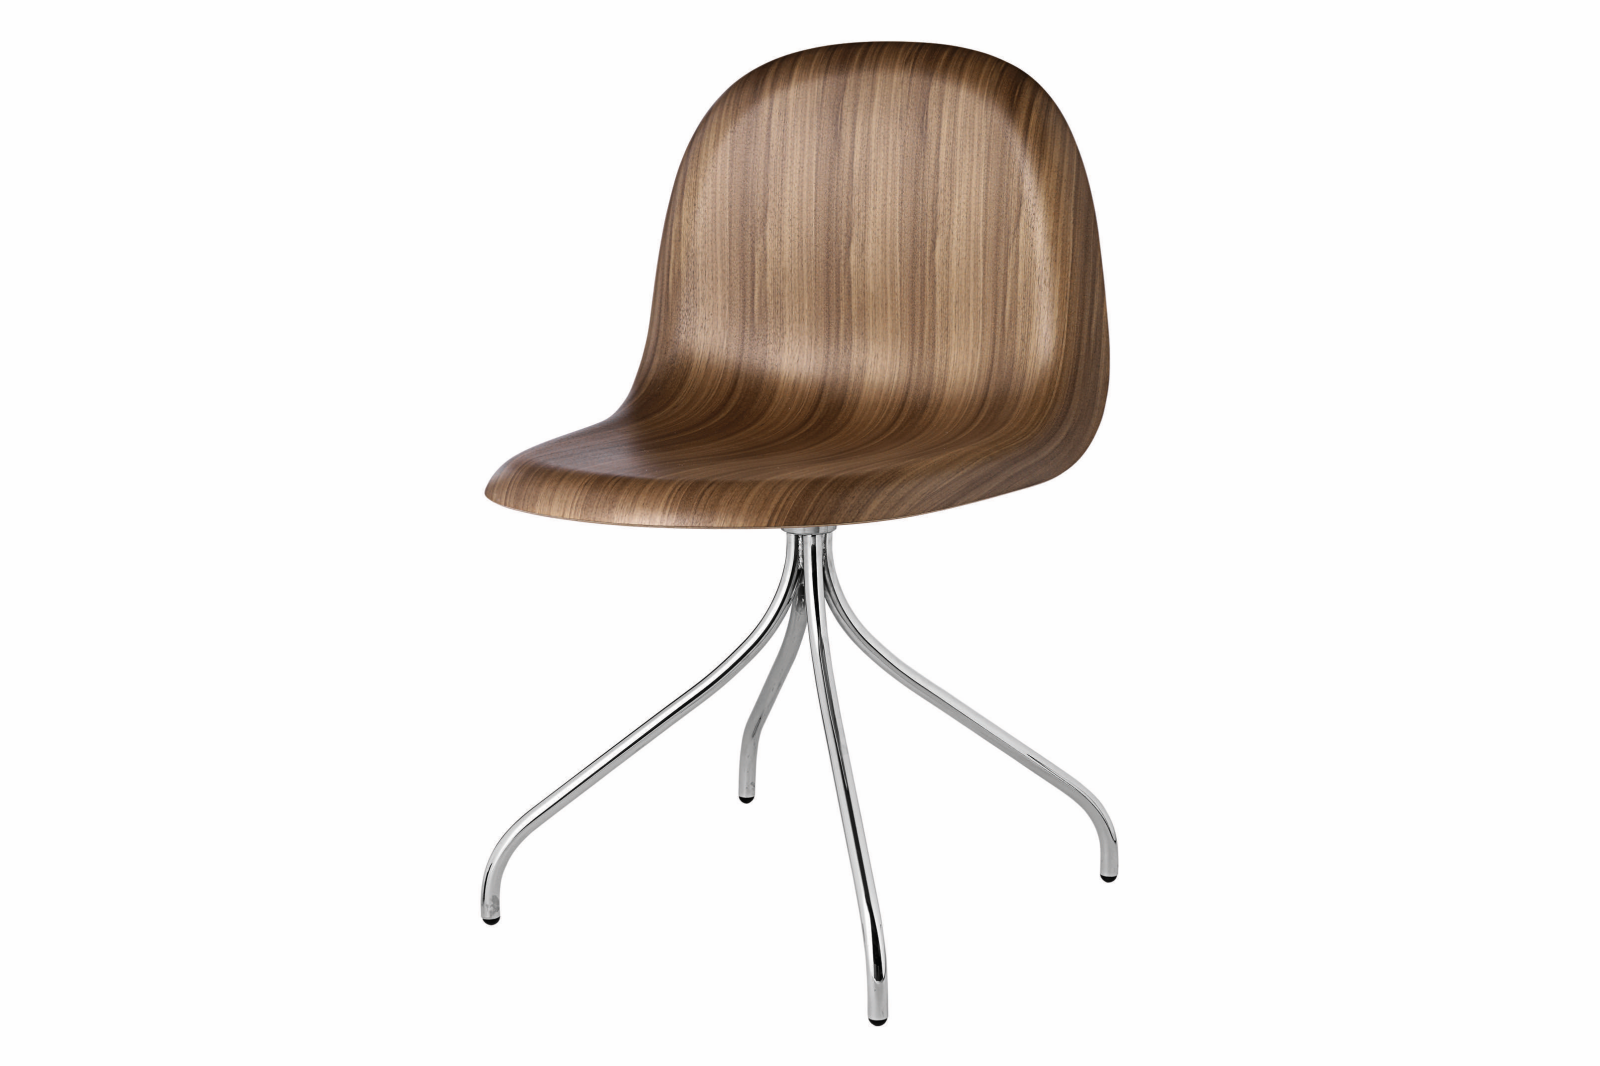 Gubi 3D Swivel Base Dining Chair - Unupholstered Gubi Wood American Walnut, Gubi Metal Chrome